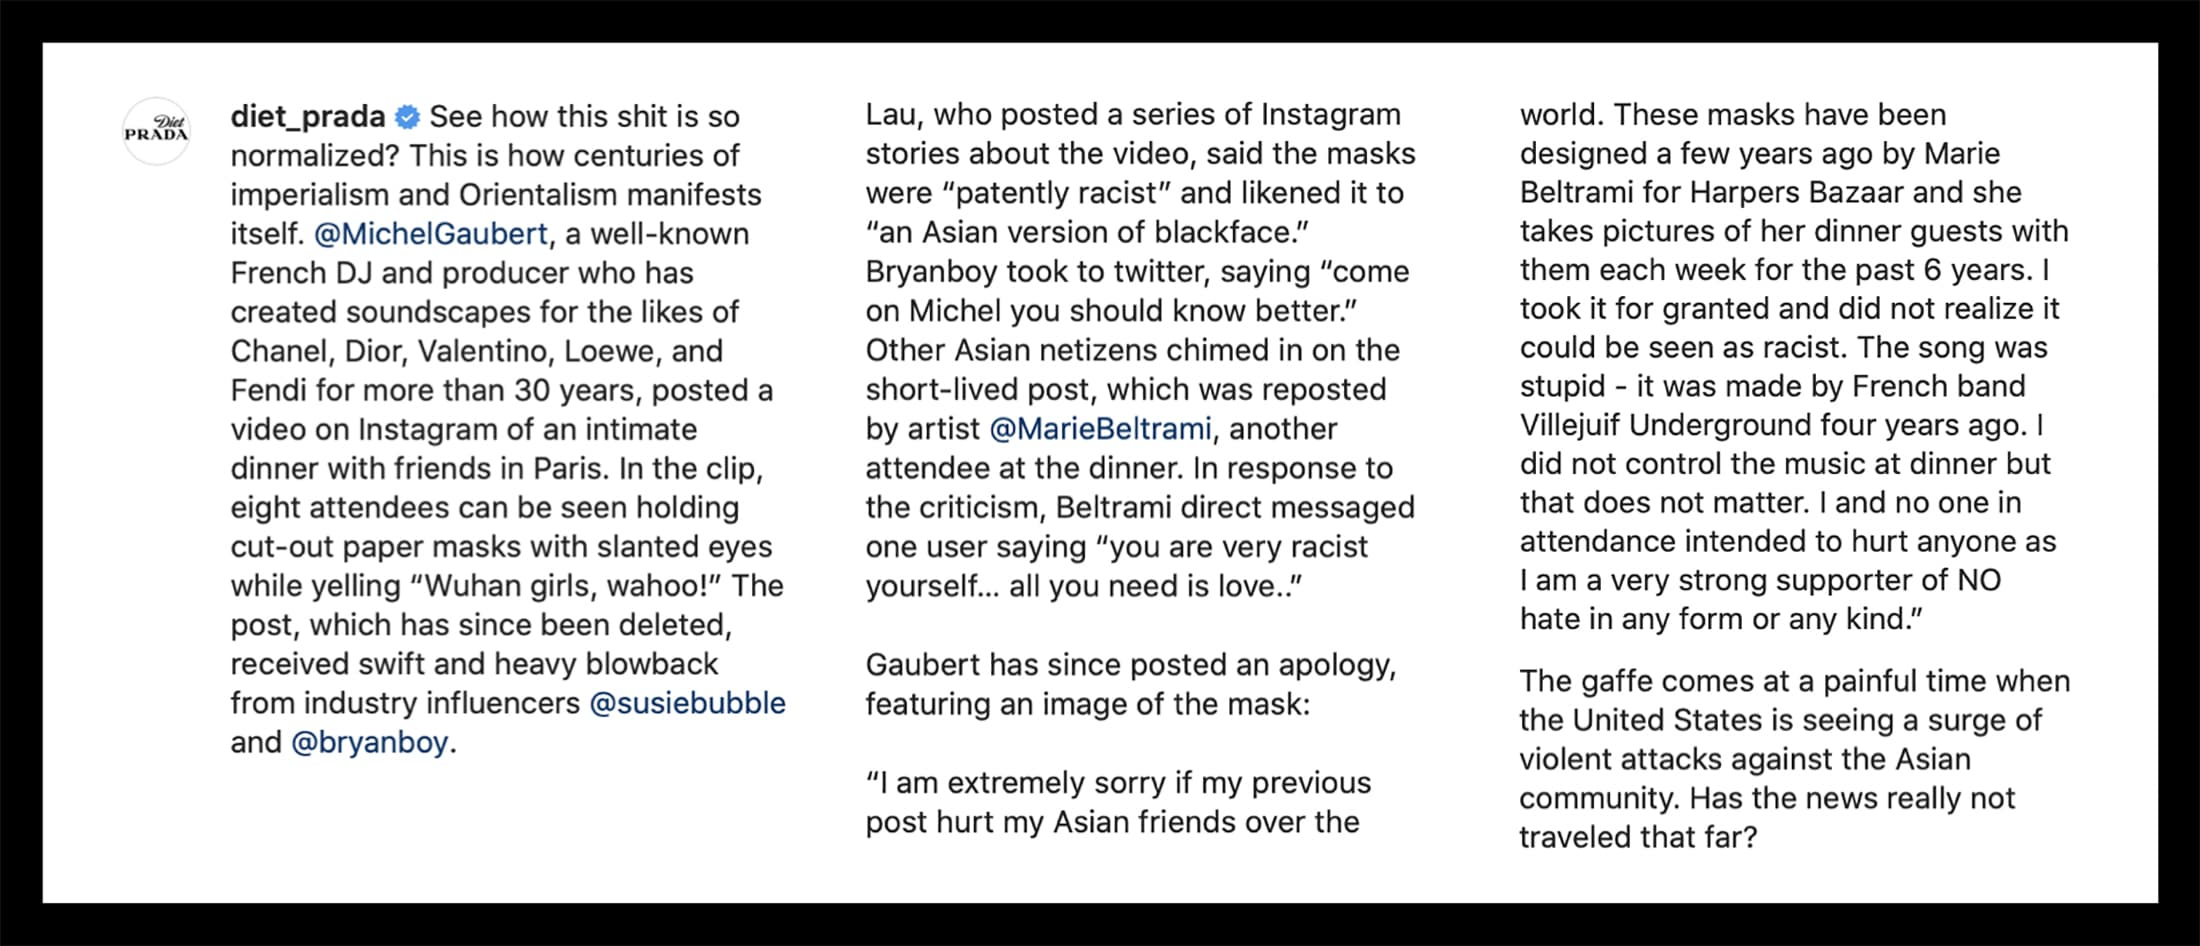 #STOPASIANHATE: Fashion's Myth and Reality